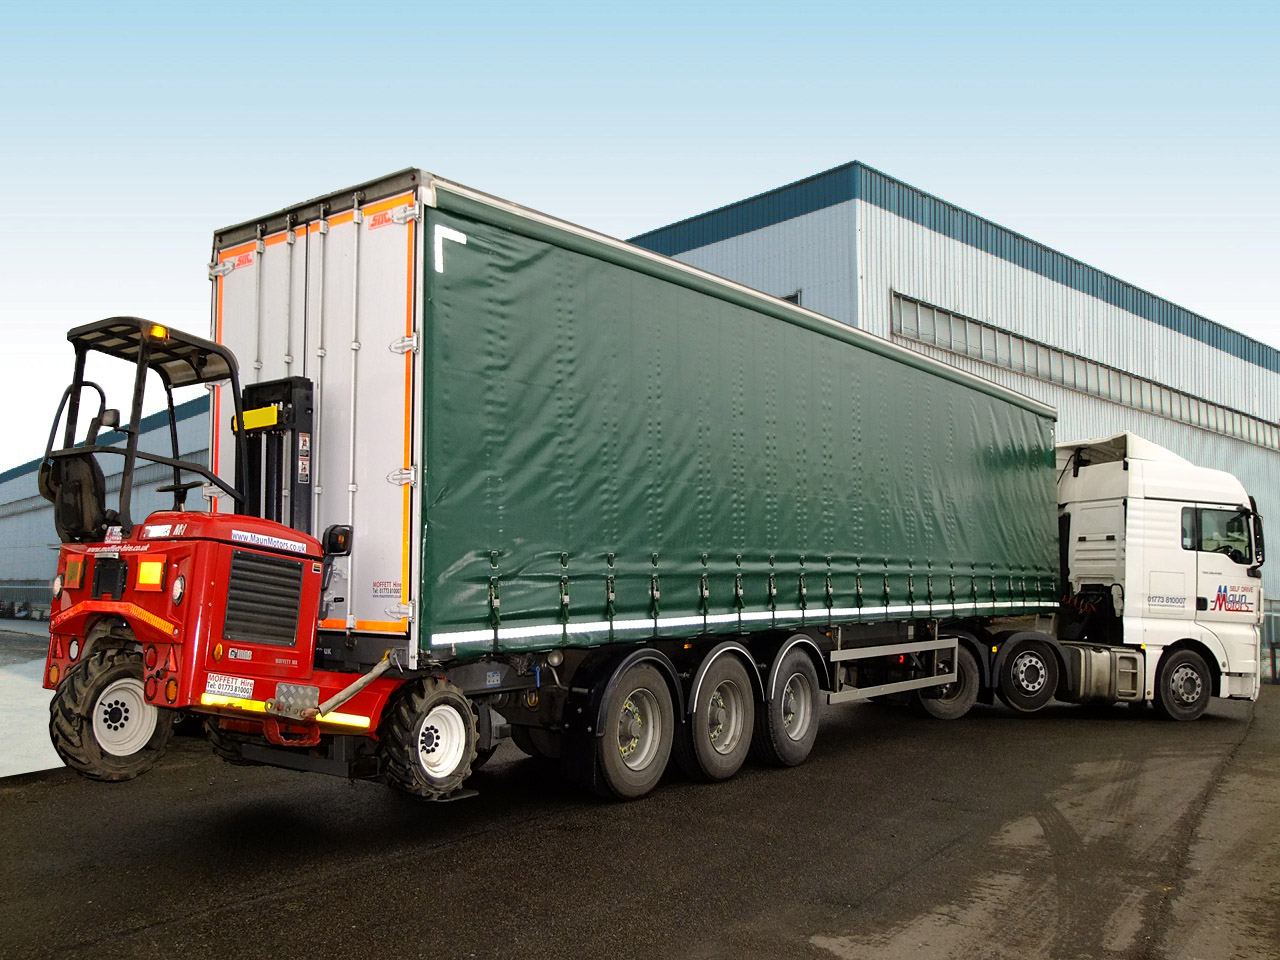 HGV Trailer Rental - 40 foot Curtain-Side Tri-Axle, Moffett Mounting Kit